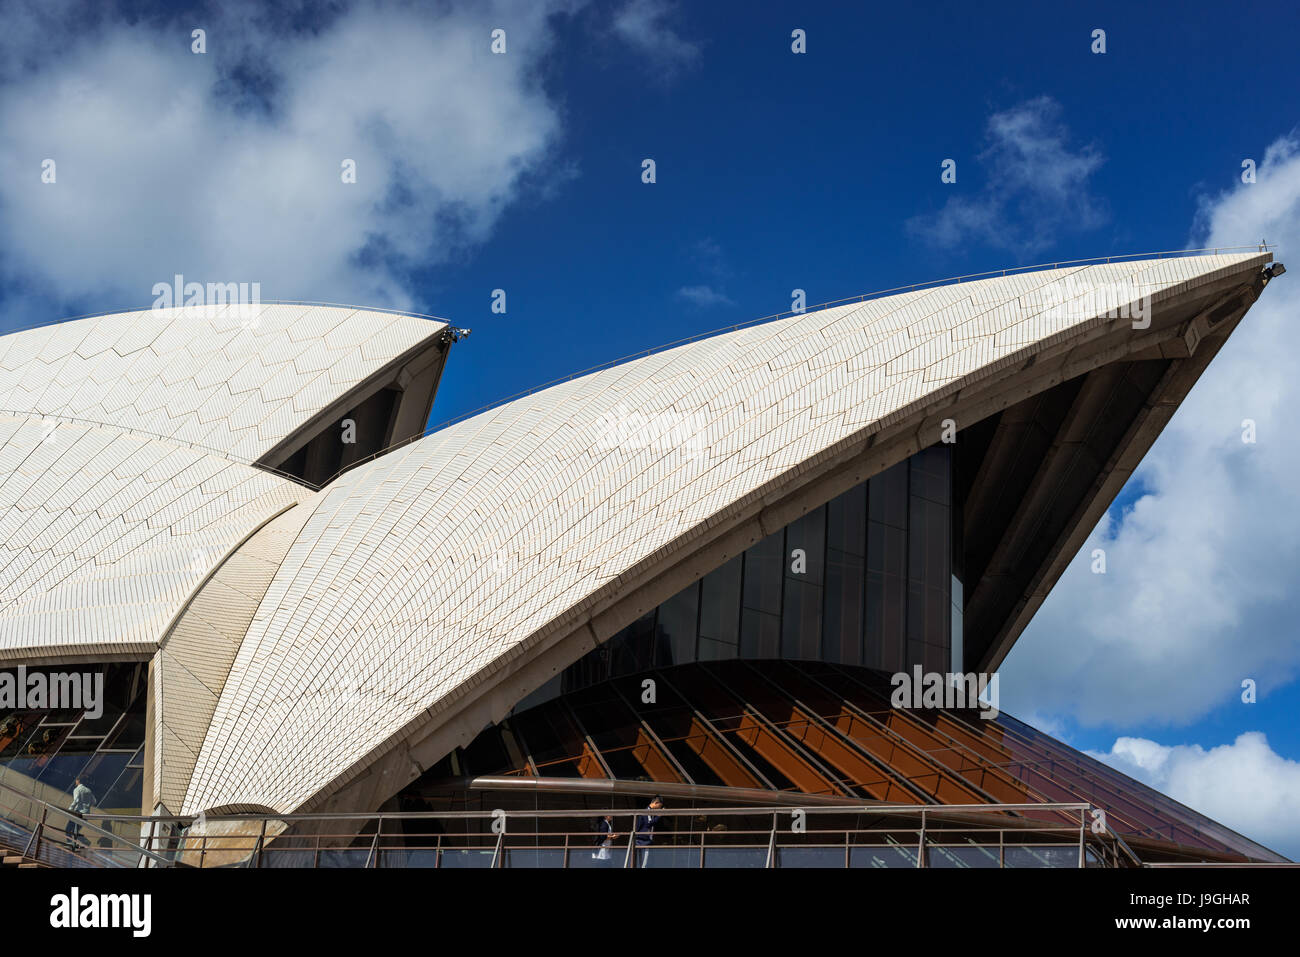 Sydney Opera House sails, Sydney, New South Wales, Australia. - Stock Image